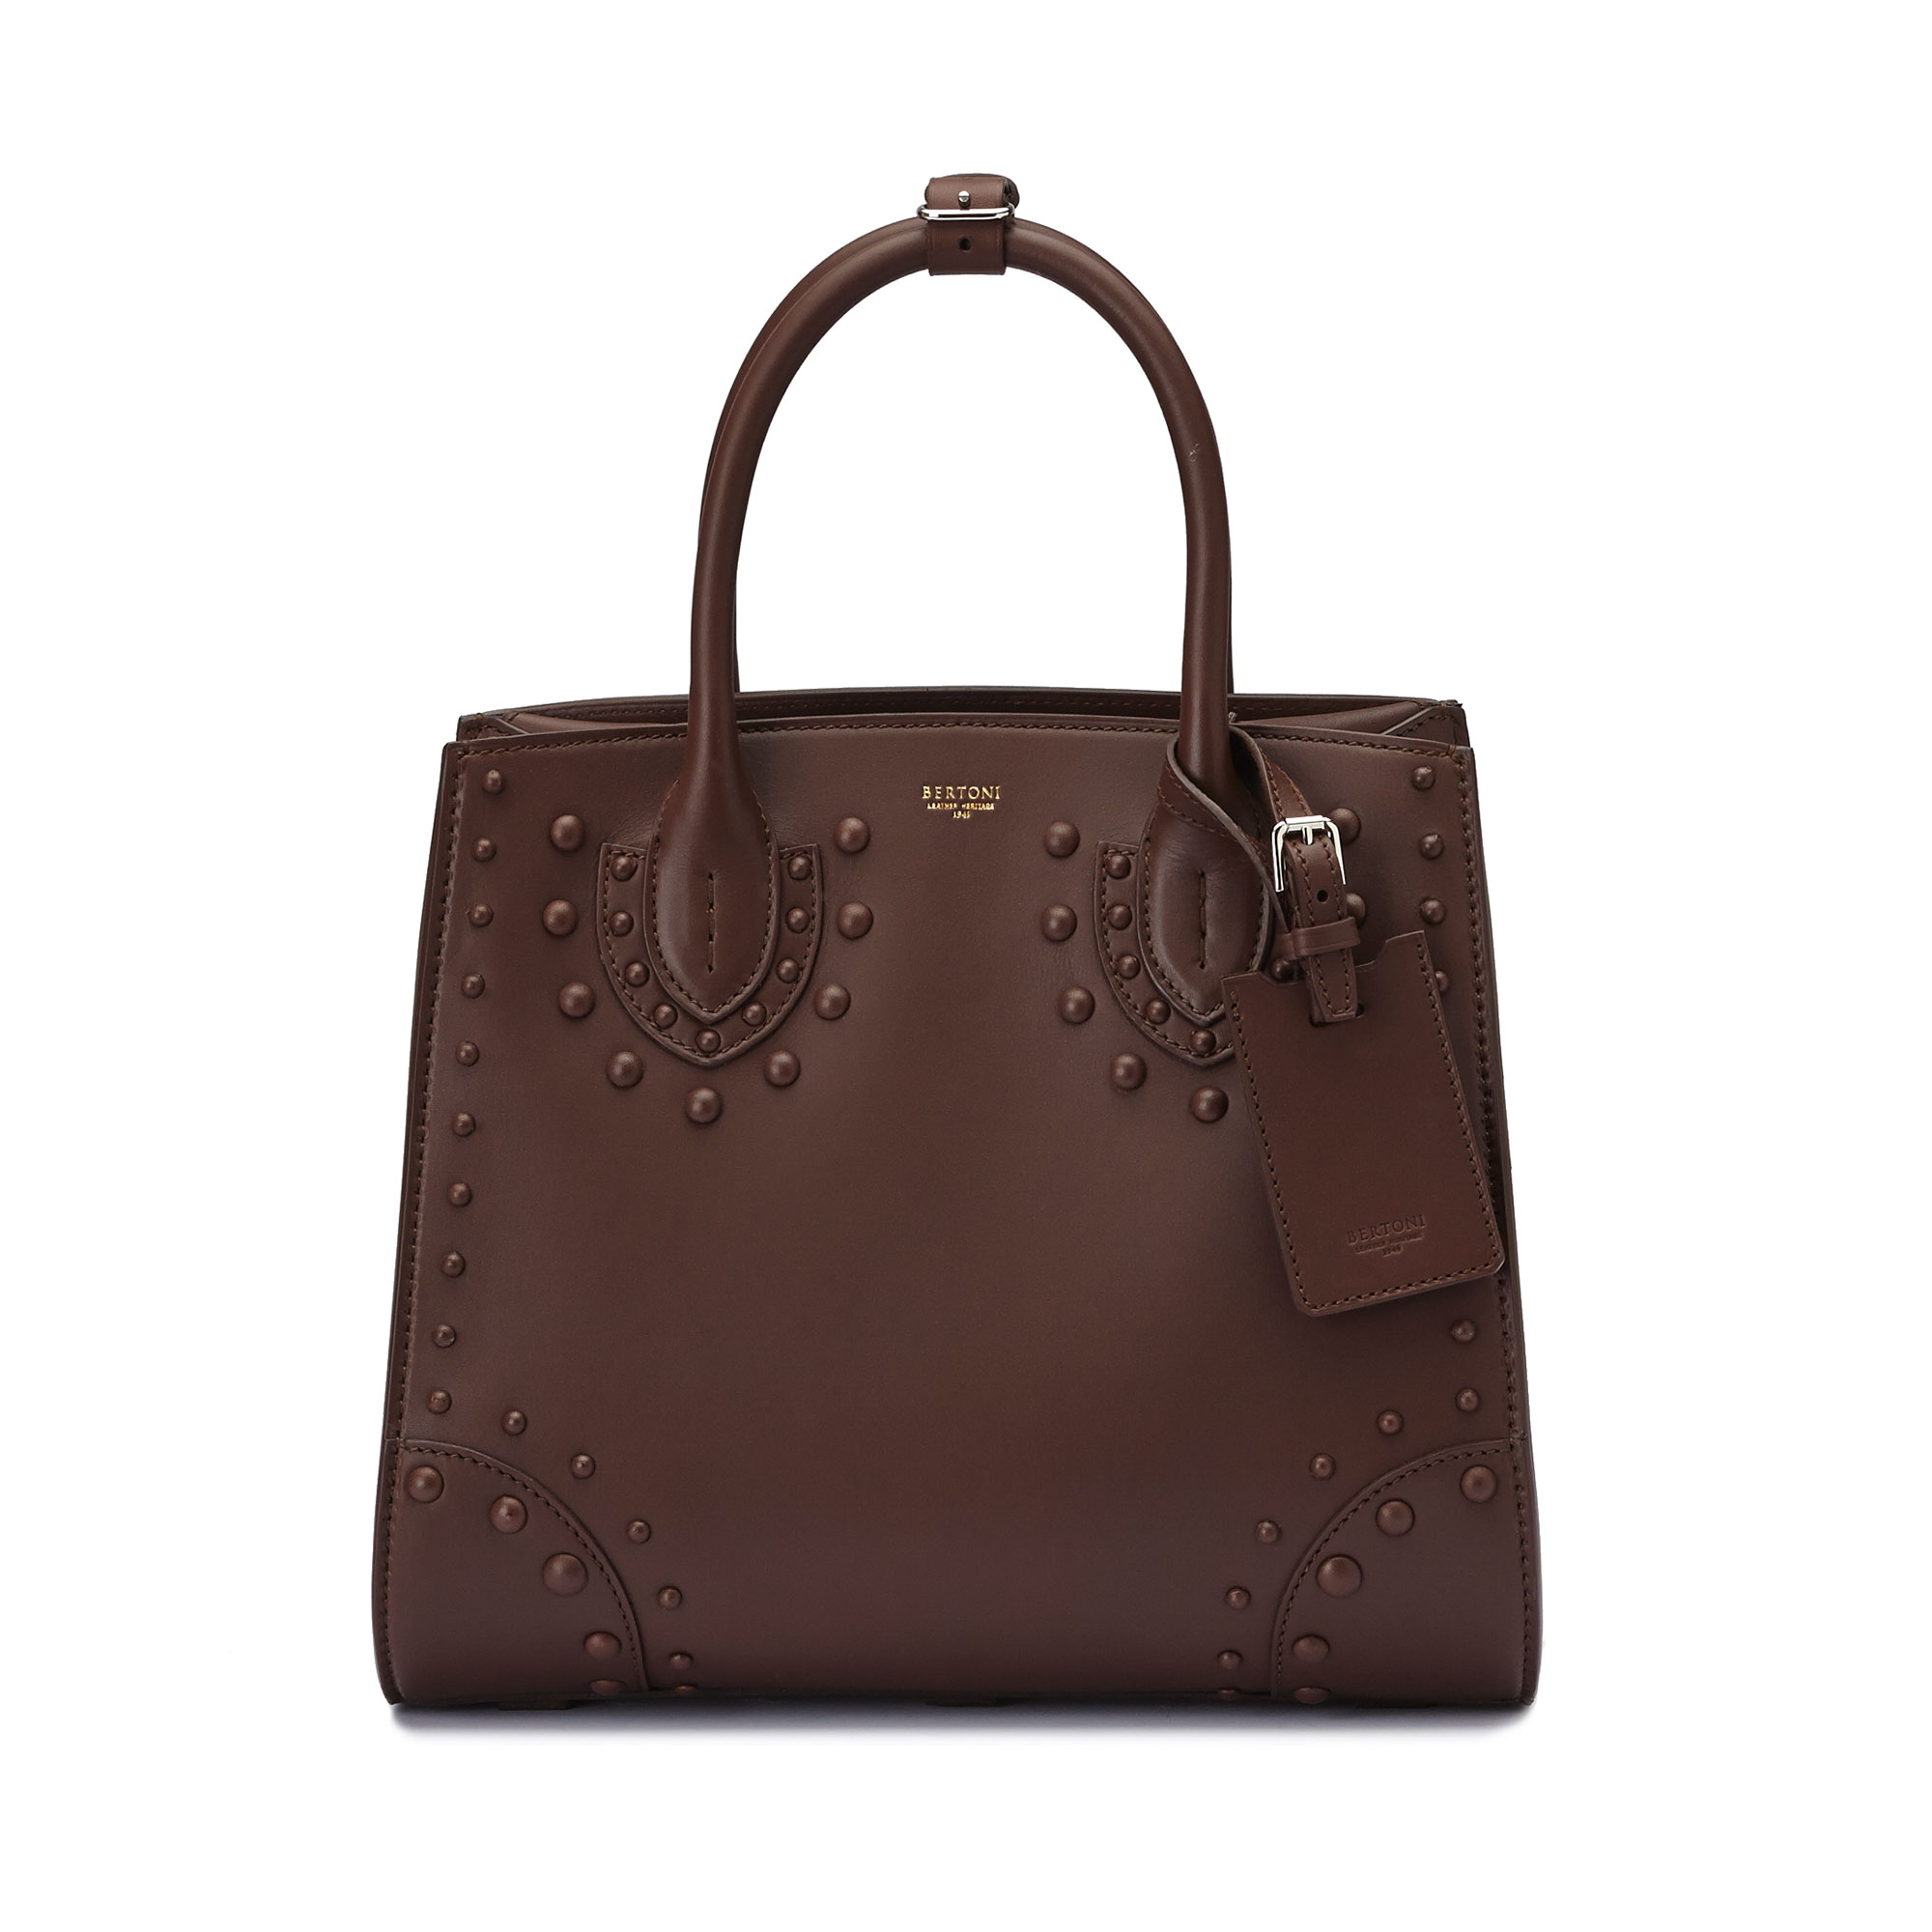 The brown french calf Darcy medium bag by Bertoni 1949 02